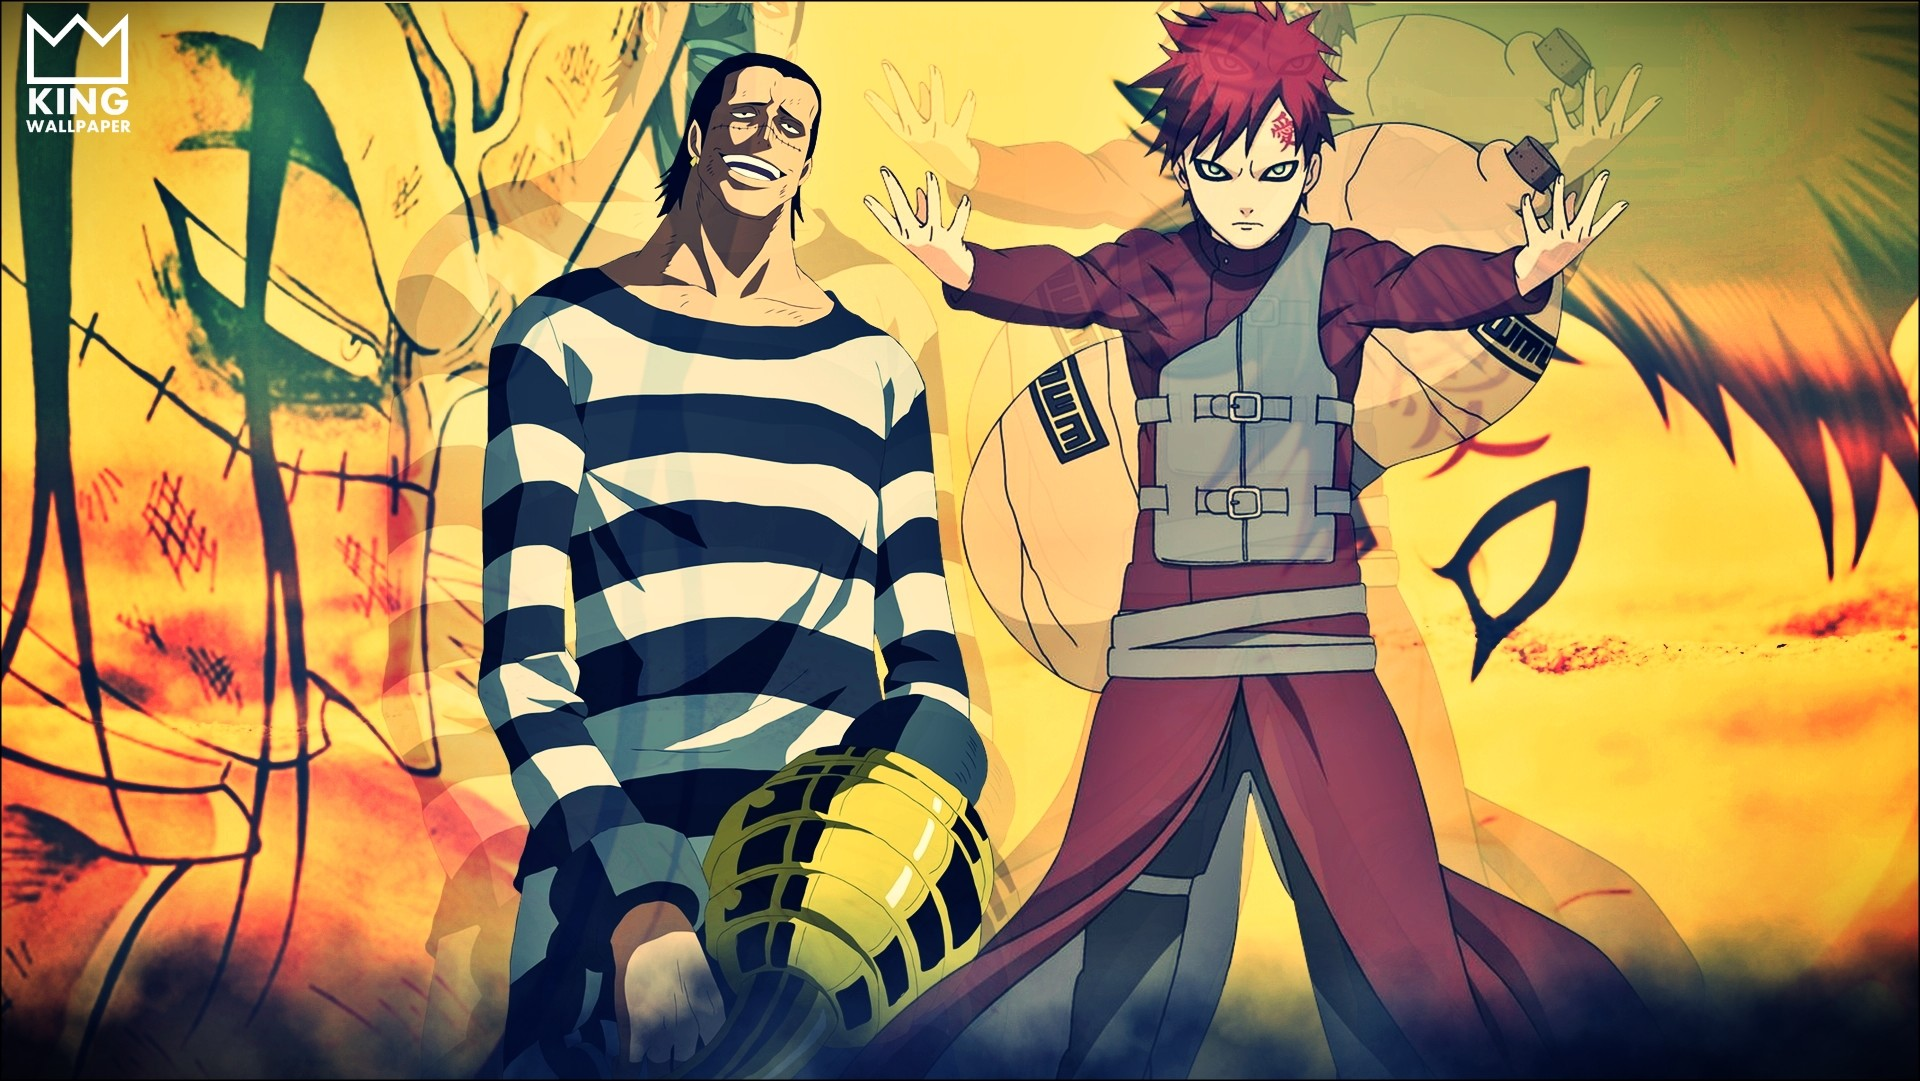 1920x1081 Crocodile x Gaara Wallpaper by Kingwallpaper Crocodile x Gaara Wallpaper by  Kingwallpaper